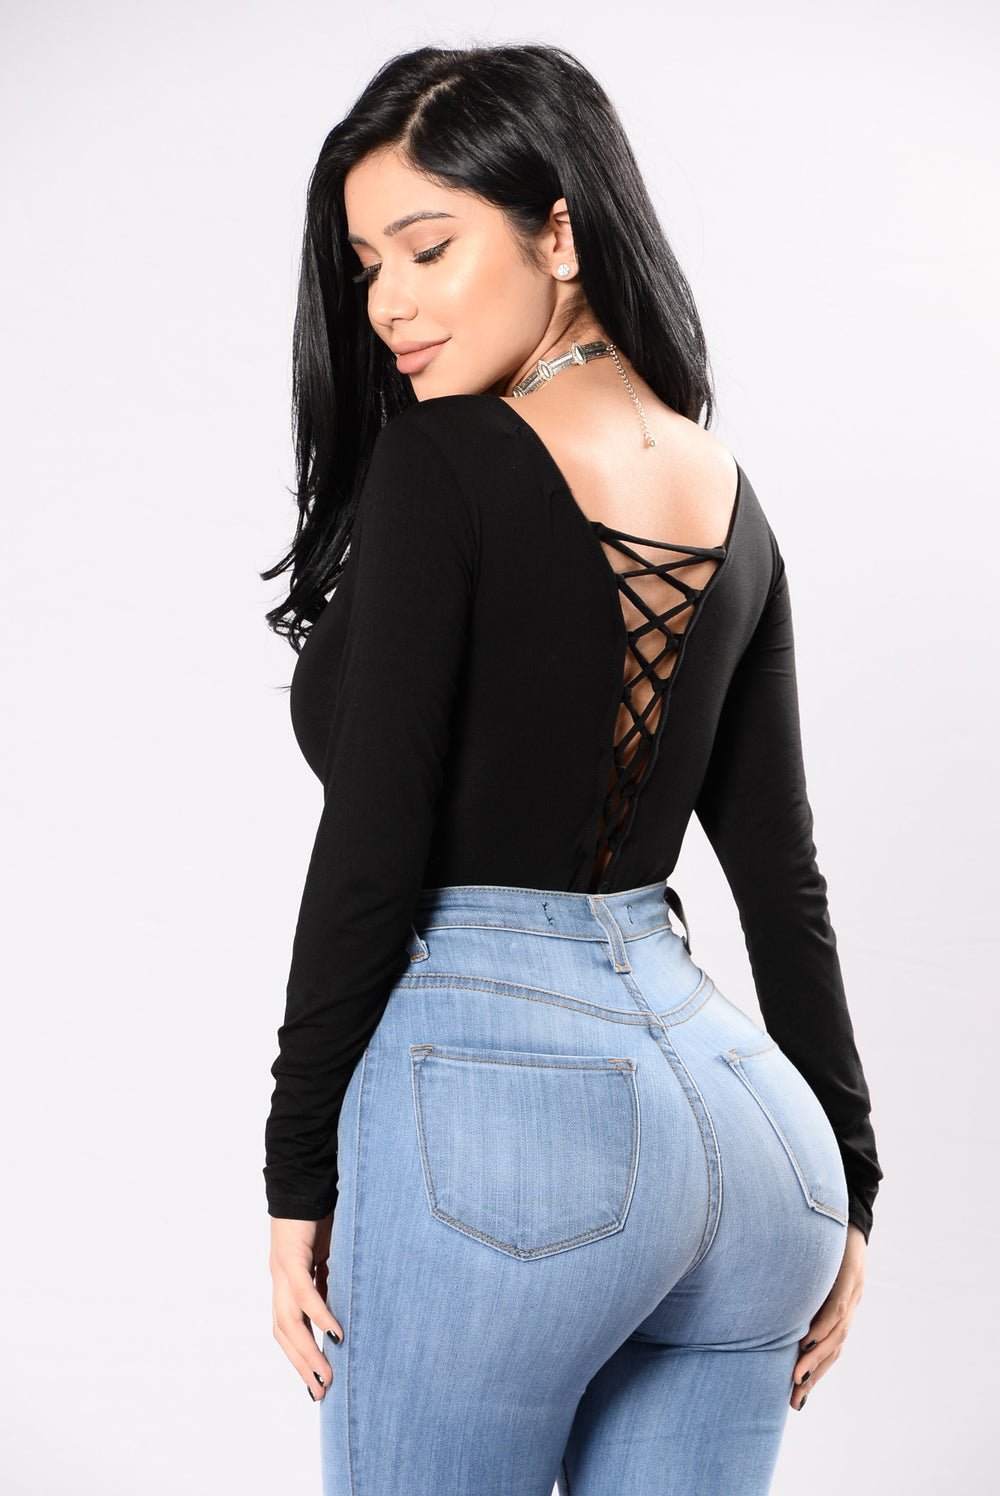 Both Sides Of The Story Bodysuit - Black